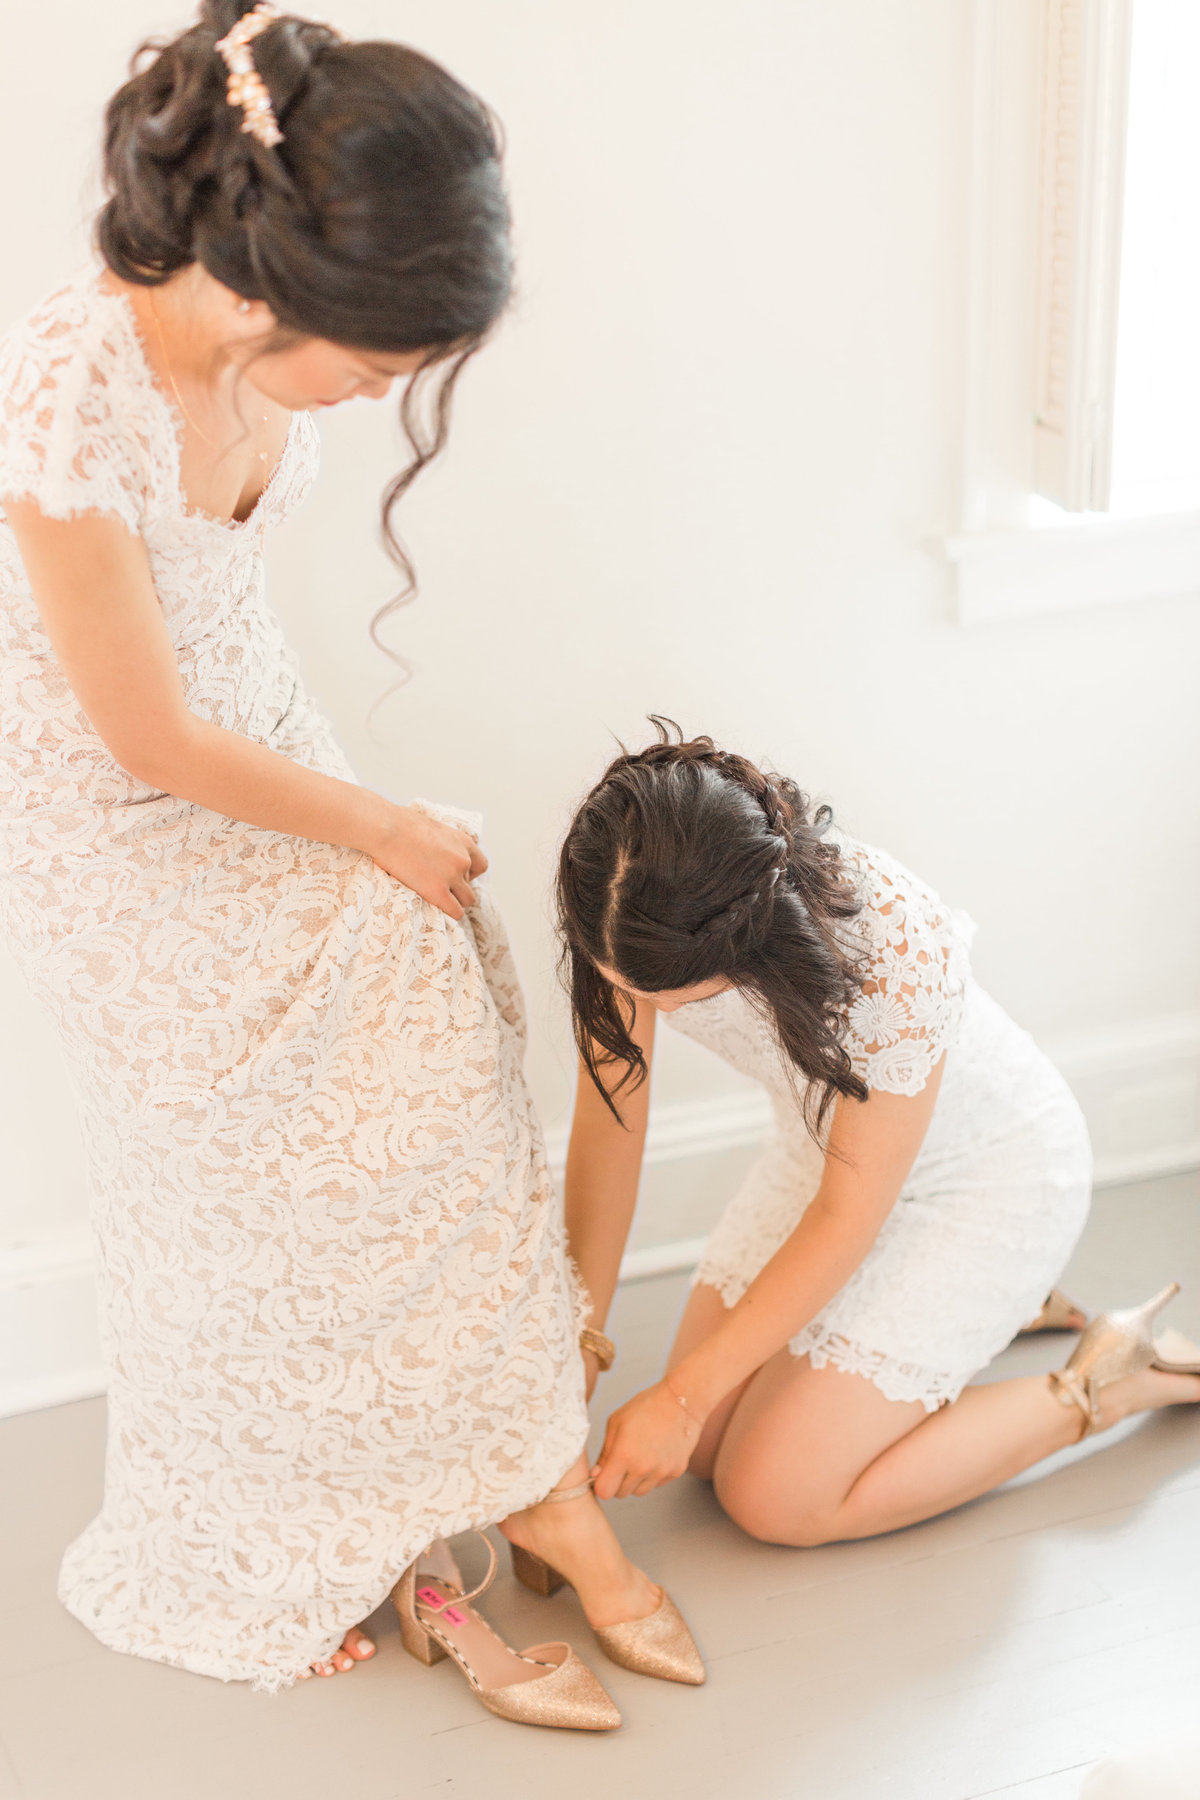 Leesburg-Wedding-Photos_Thomas-Birkby-House-Wedding_Jessica-Green-Photography-42